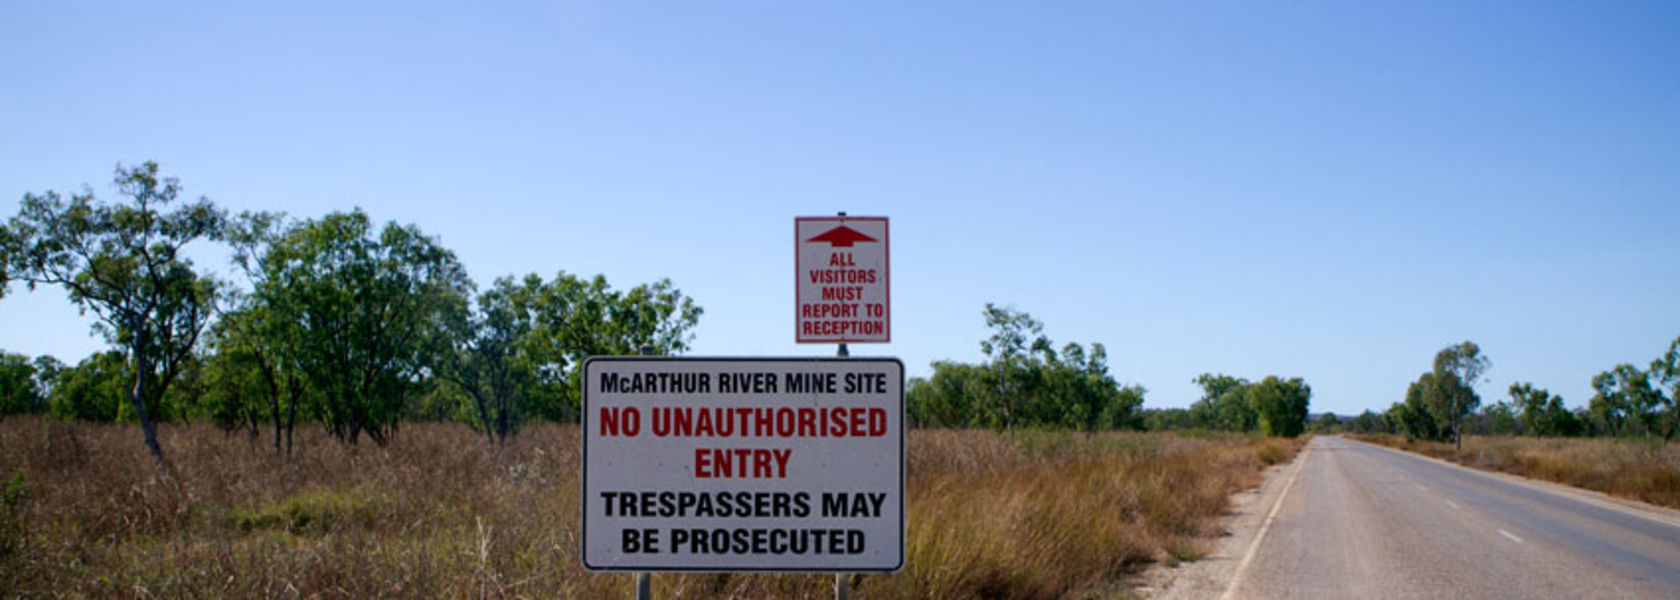 Clearance for McArthur River expansion has greens seeing red